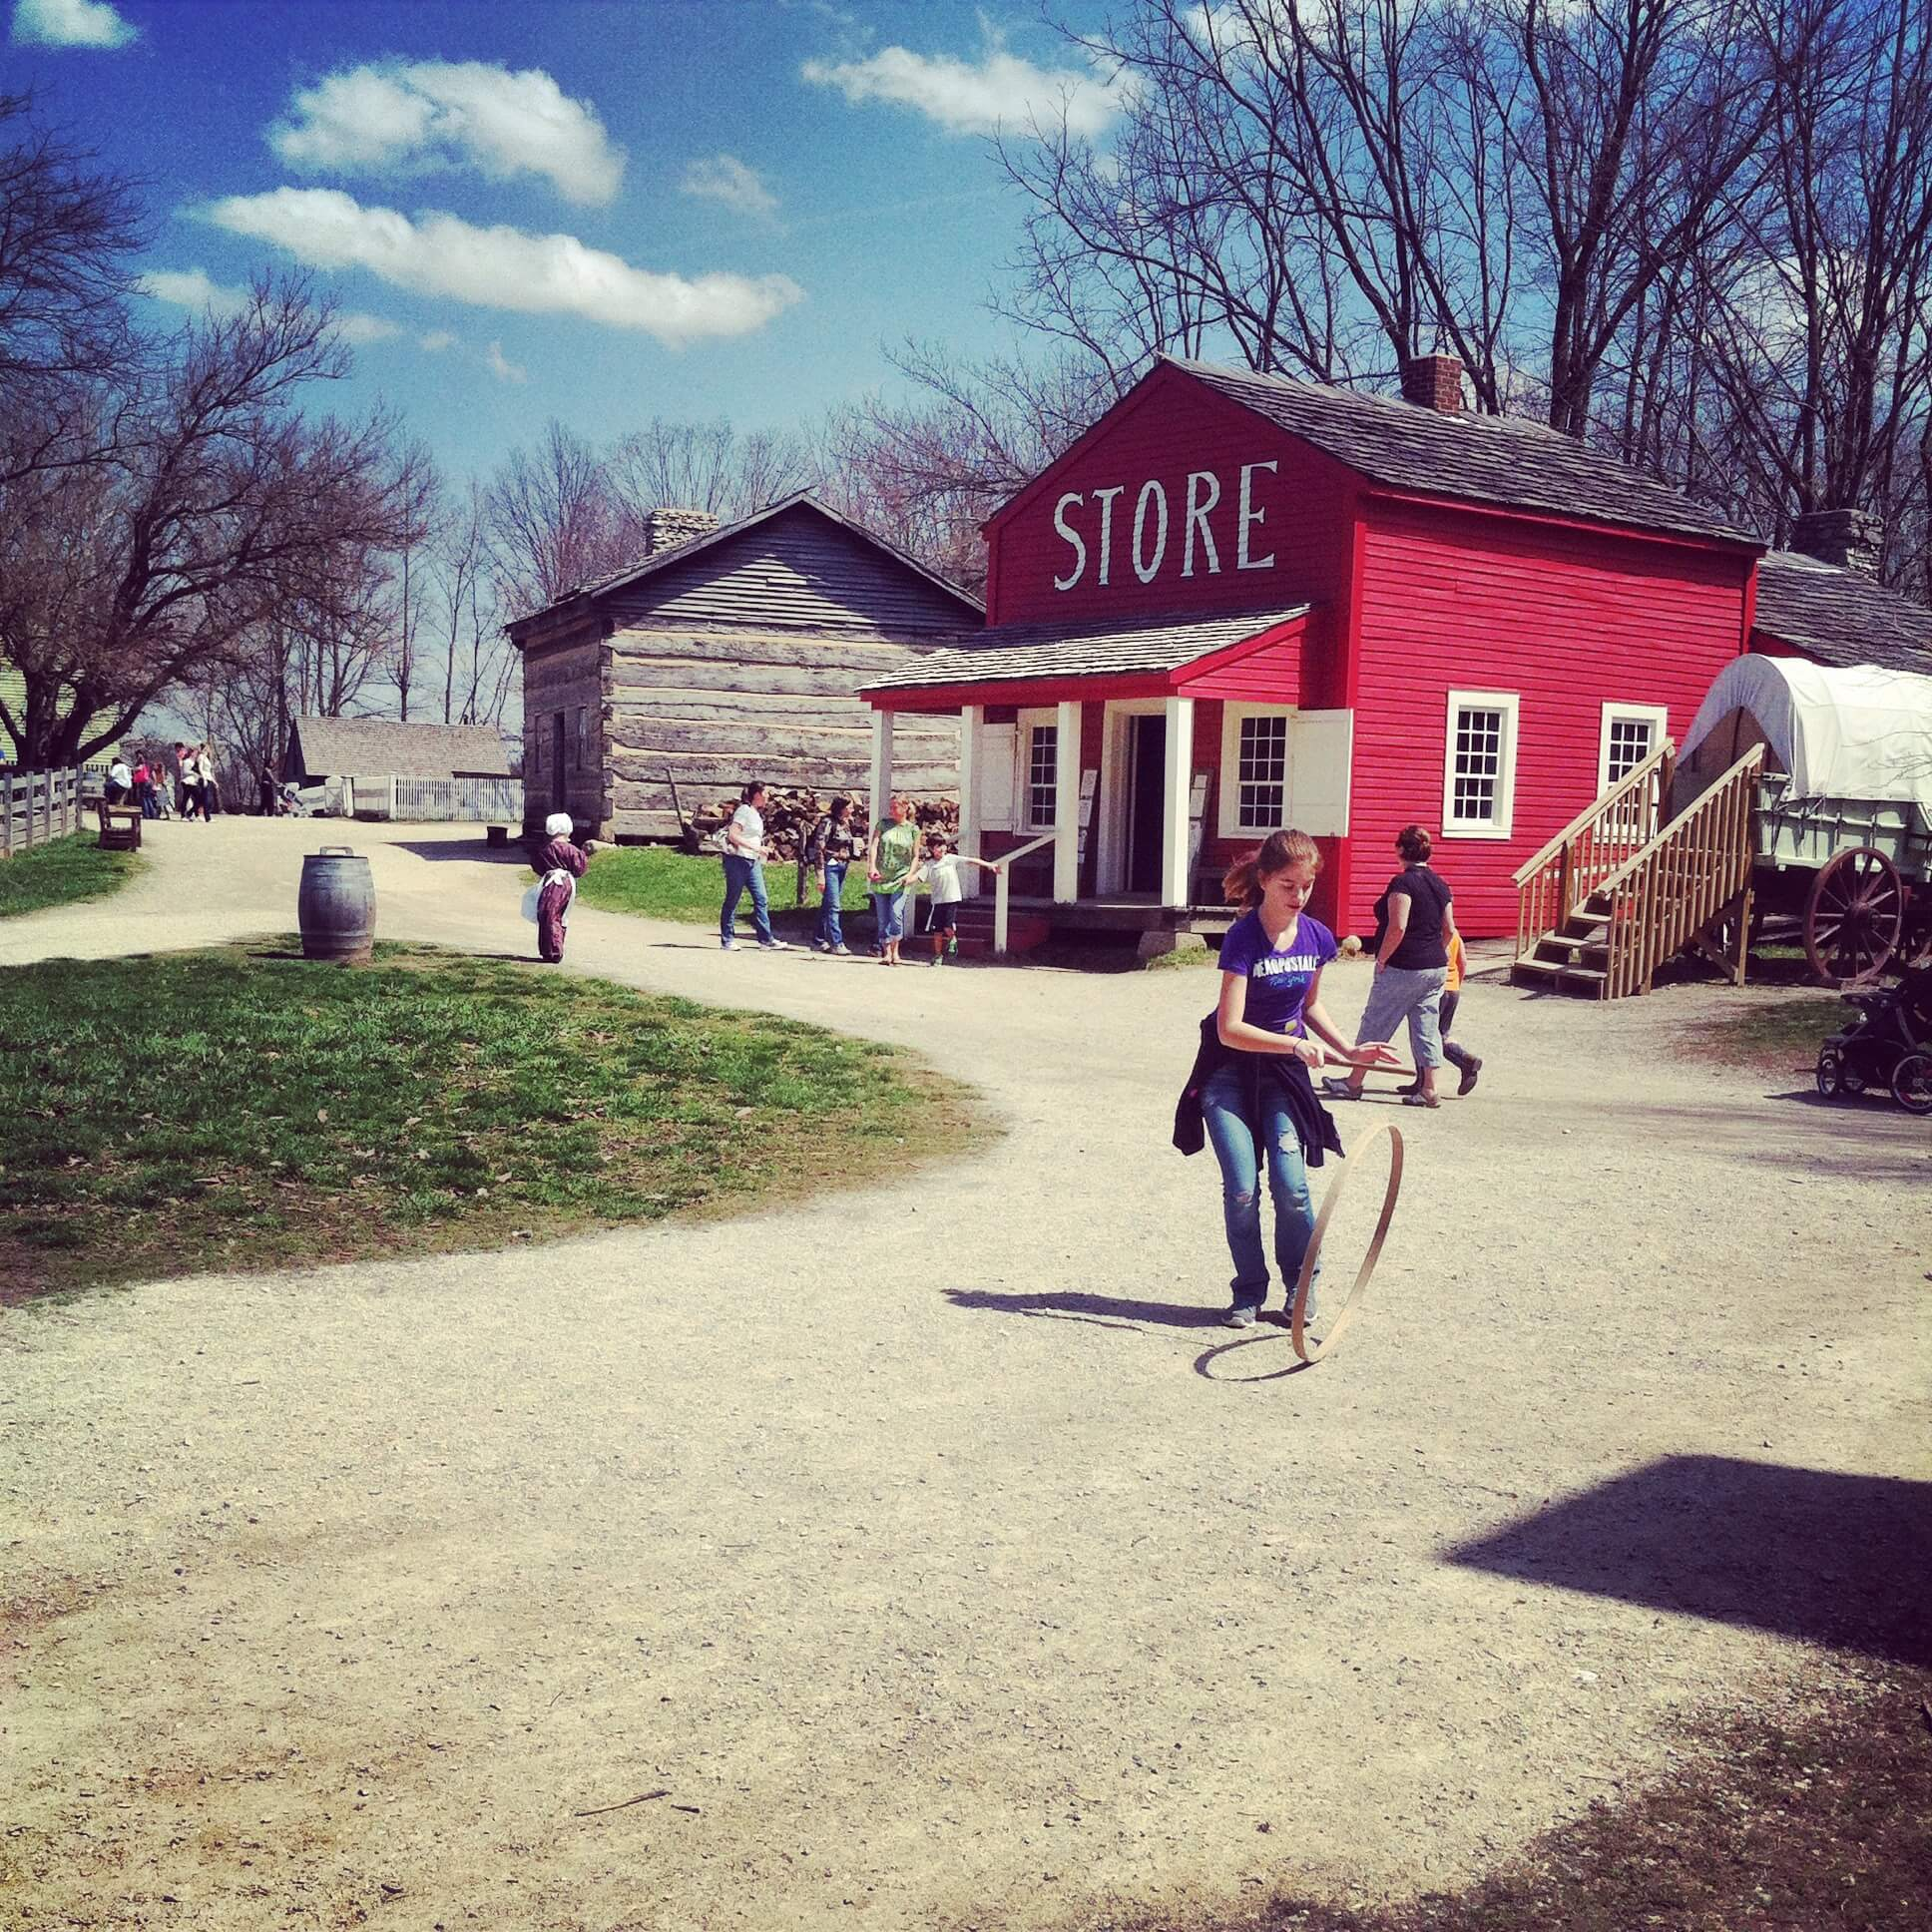 Family-Friendly Attractions in Fishers, Indiana